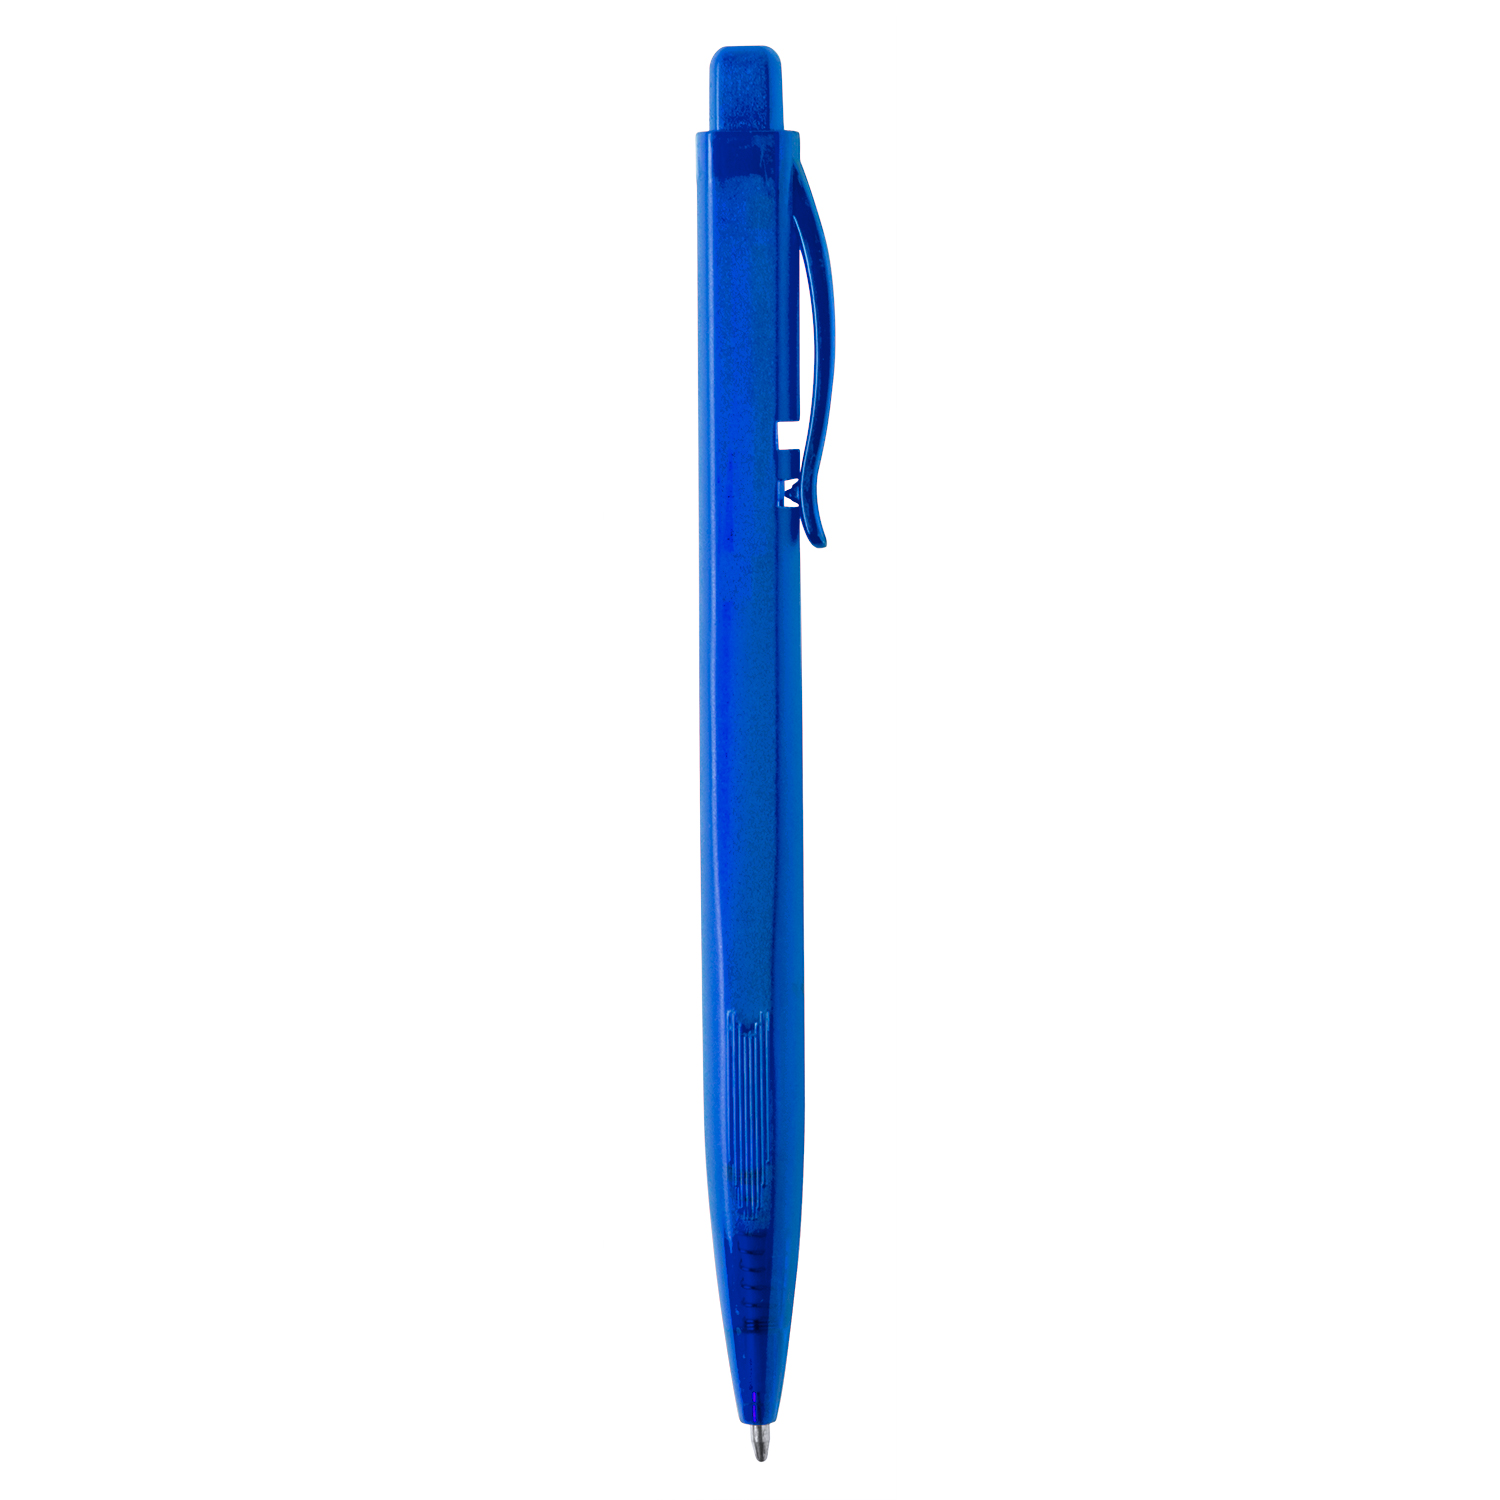 Plastic Pen 997 (plastic ball pen with blue ink) - hmi20997-07 (Blue)